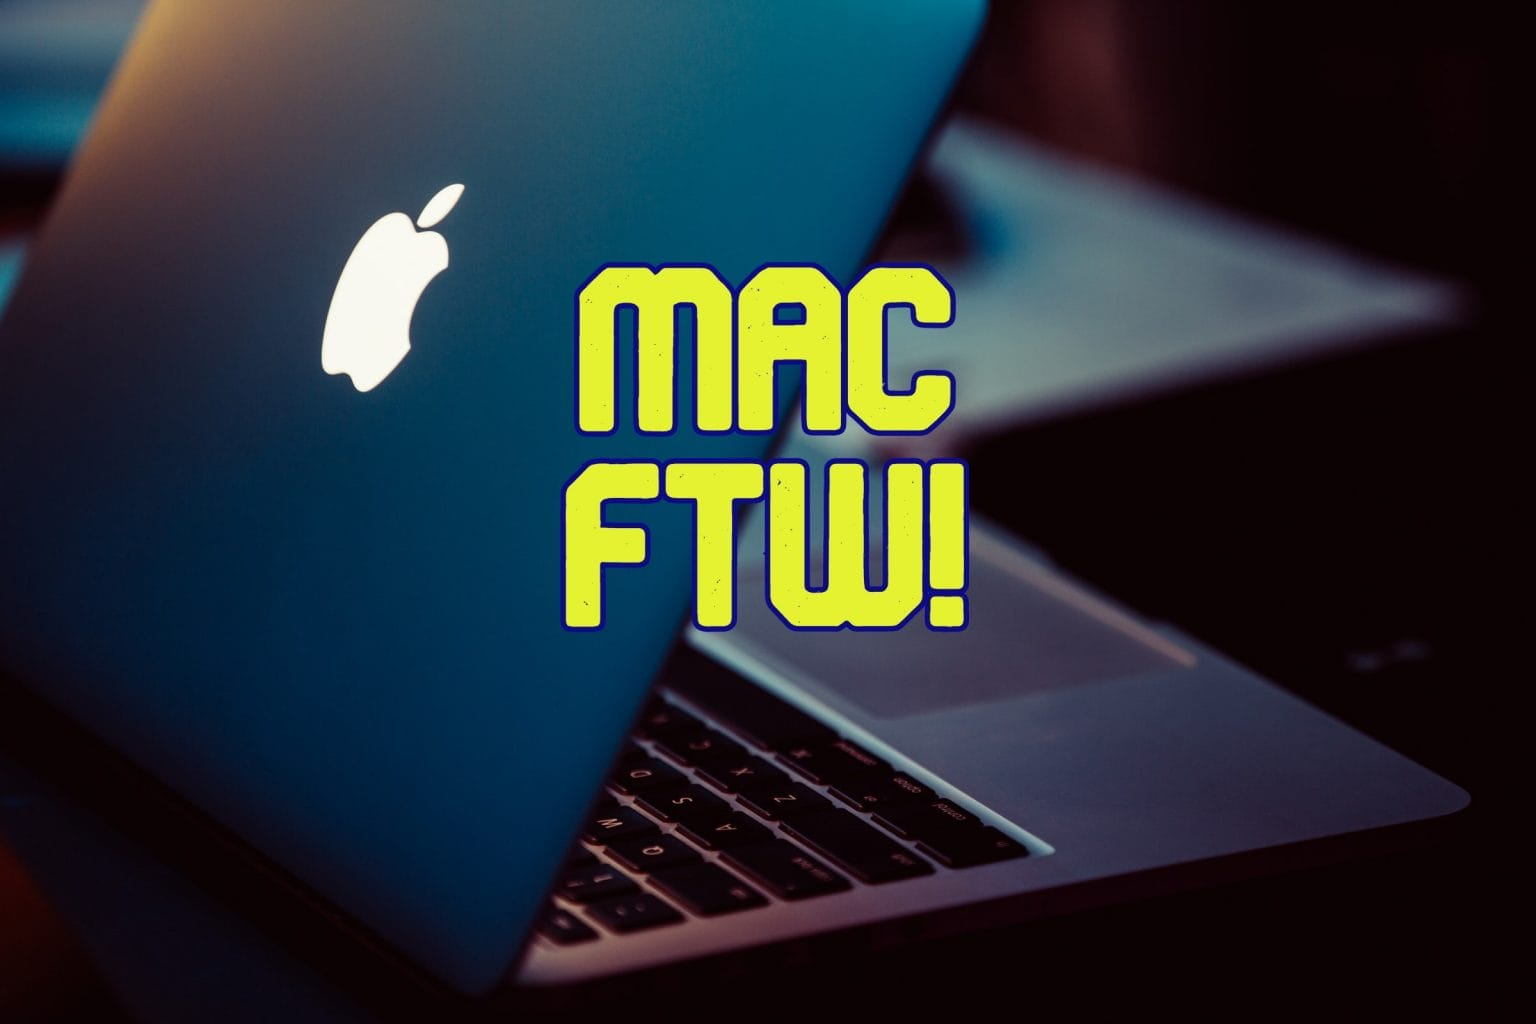 Mac FTW! Apple earnings Q2 2021: Sales of new M1 Macs powered Apple to yet another record-smashing quarter.